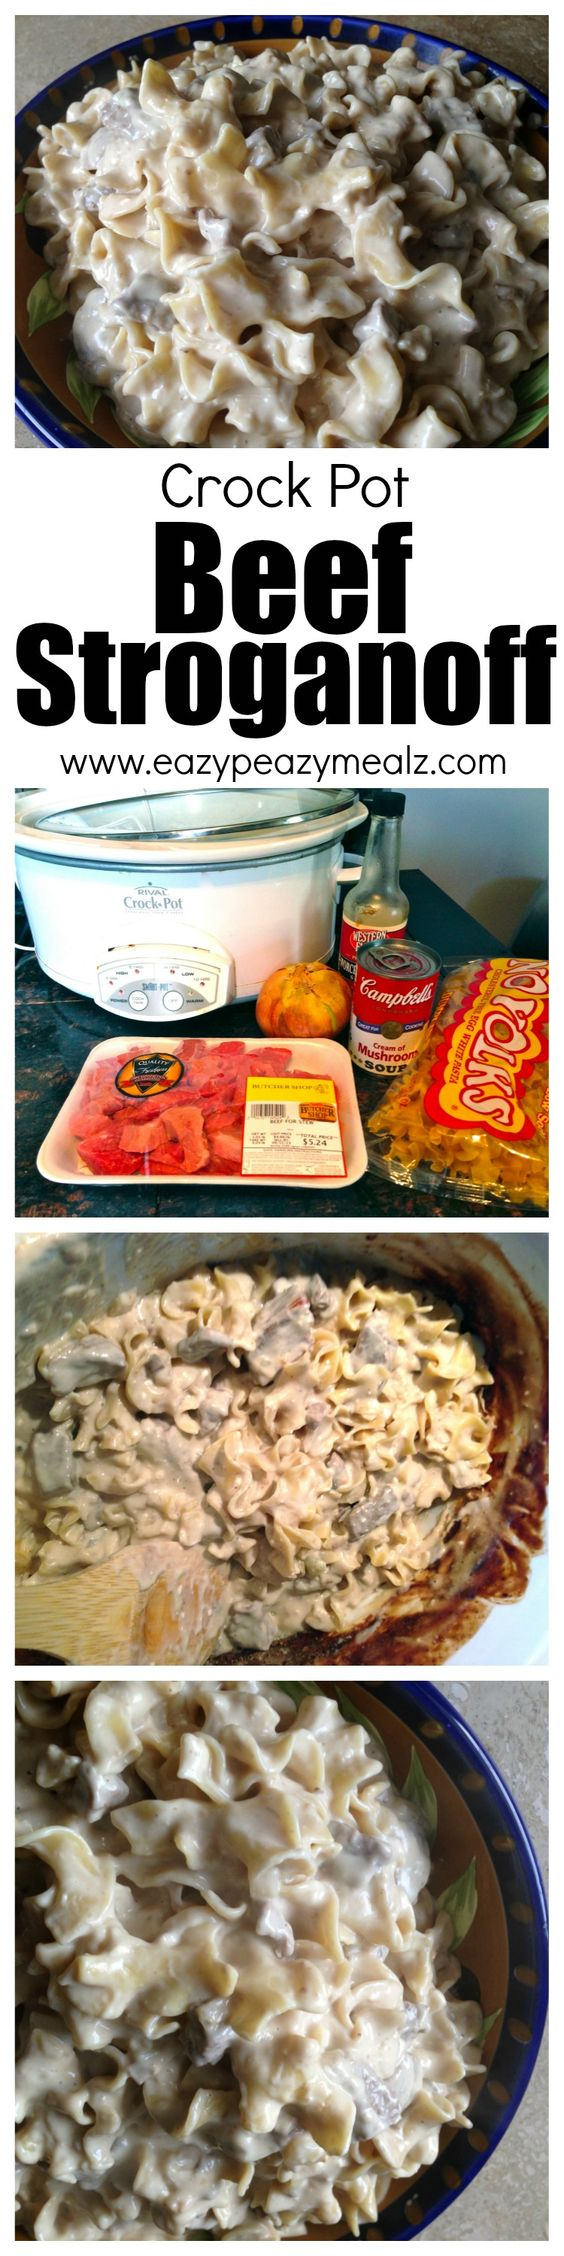 Crock Pot Beef Stroganoff | Recipe | Beef Stroganoff, Beef and Most ...